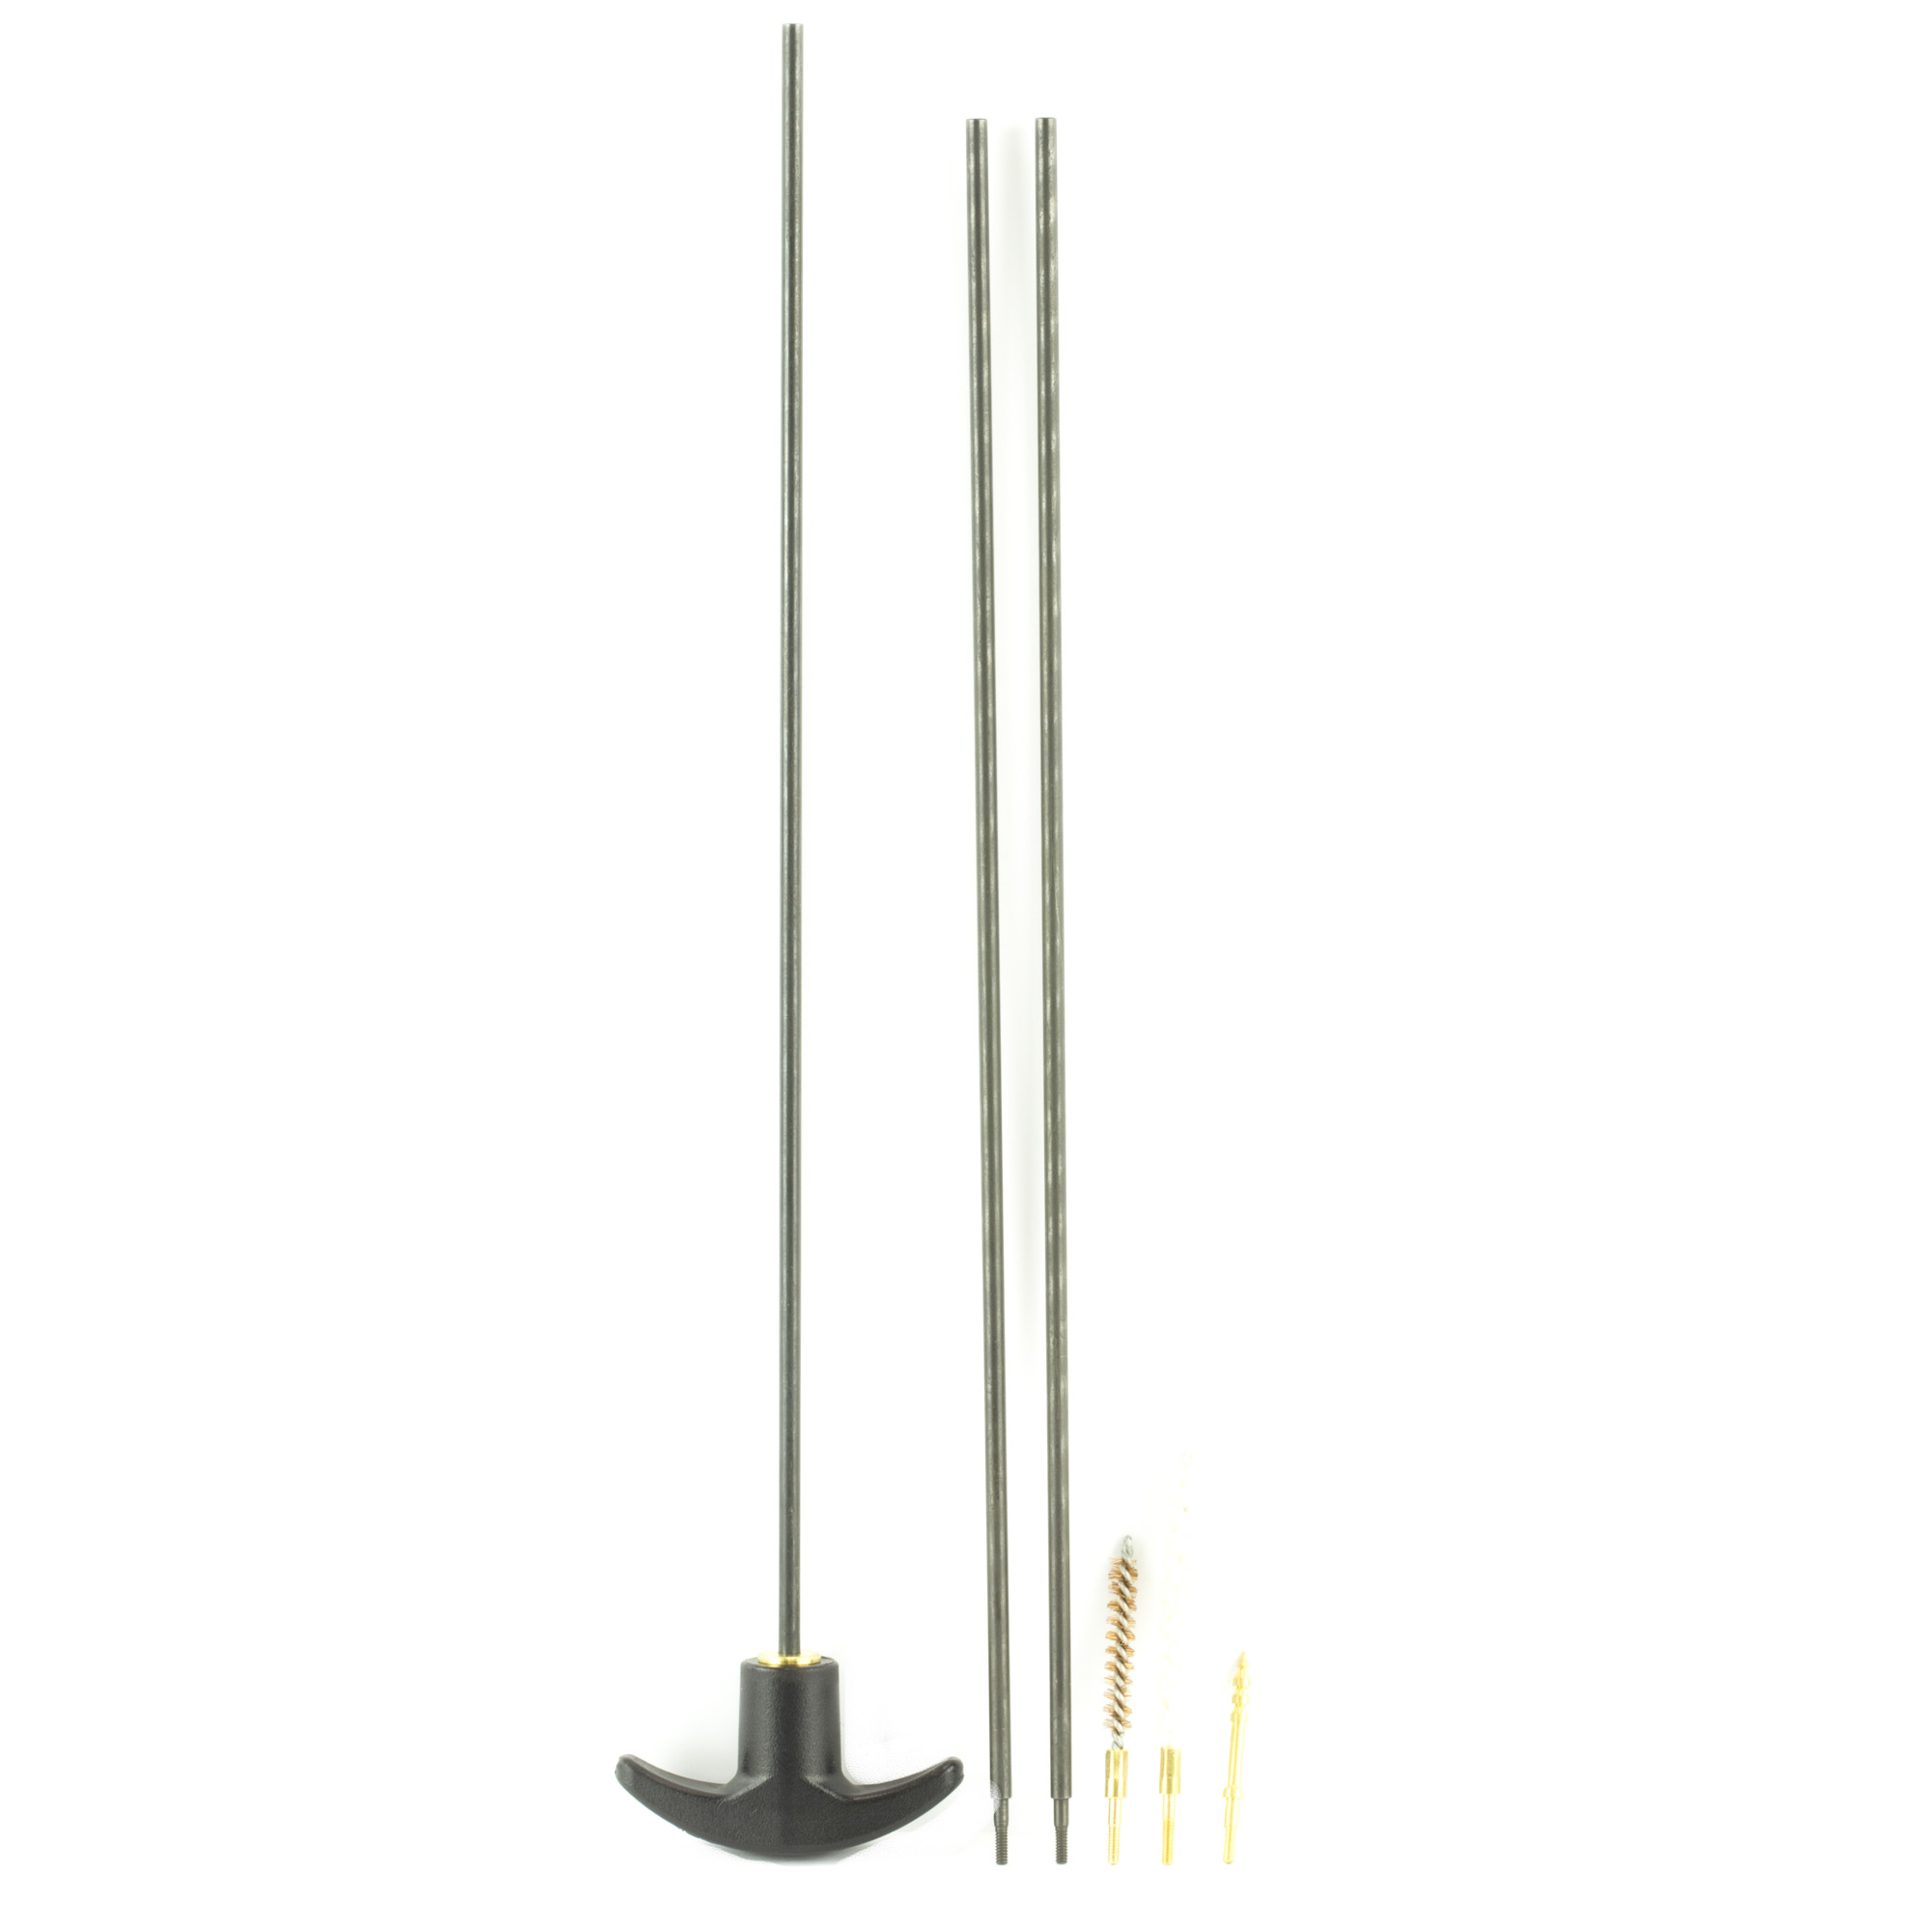 """The Kleen-Bore Three Piece .17 Caliber Rod comes packaged with a phosphor bronze bore brush"""" a cotton bore mop"""" and a jag for holding patches in place."""